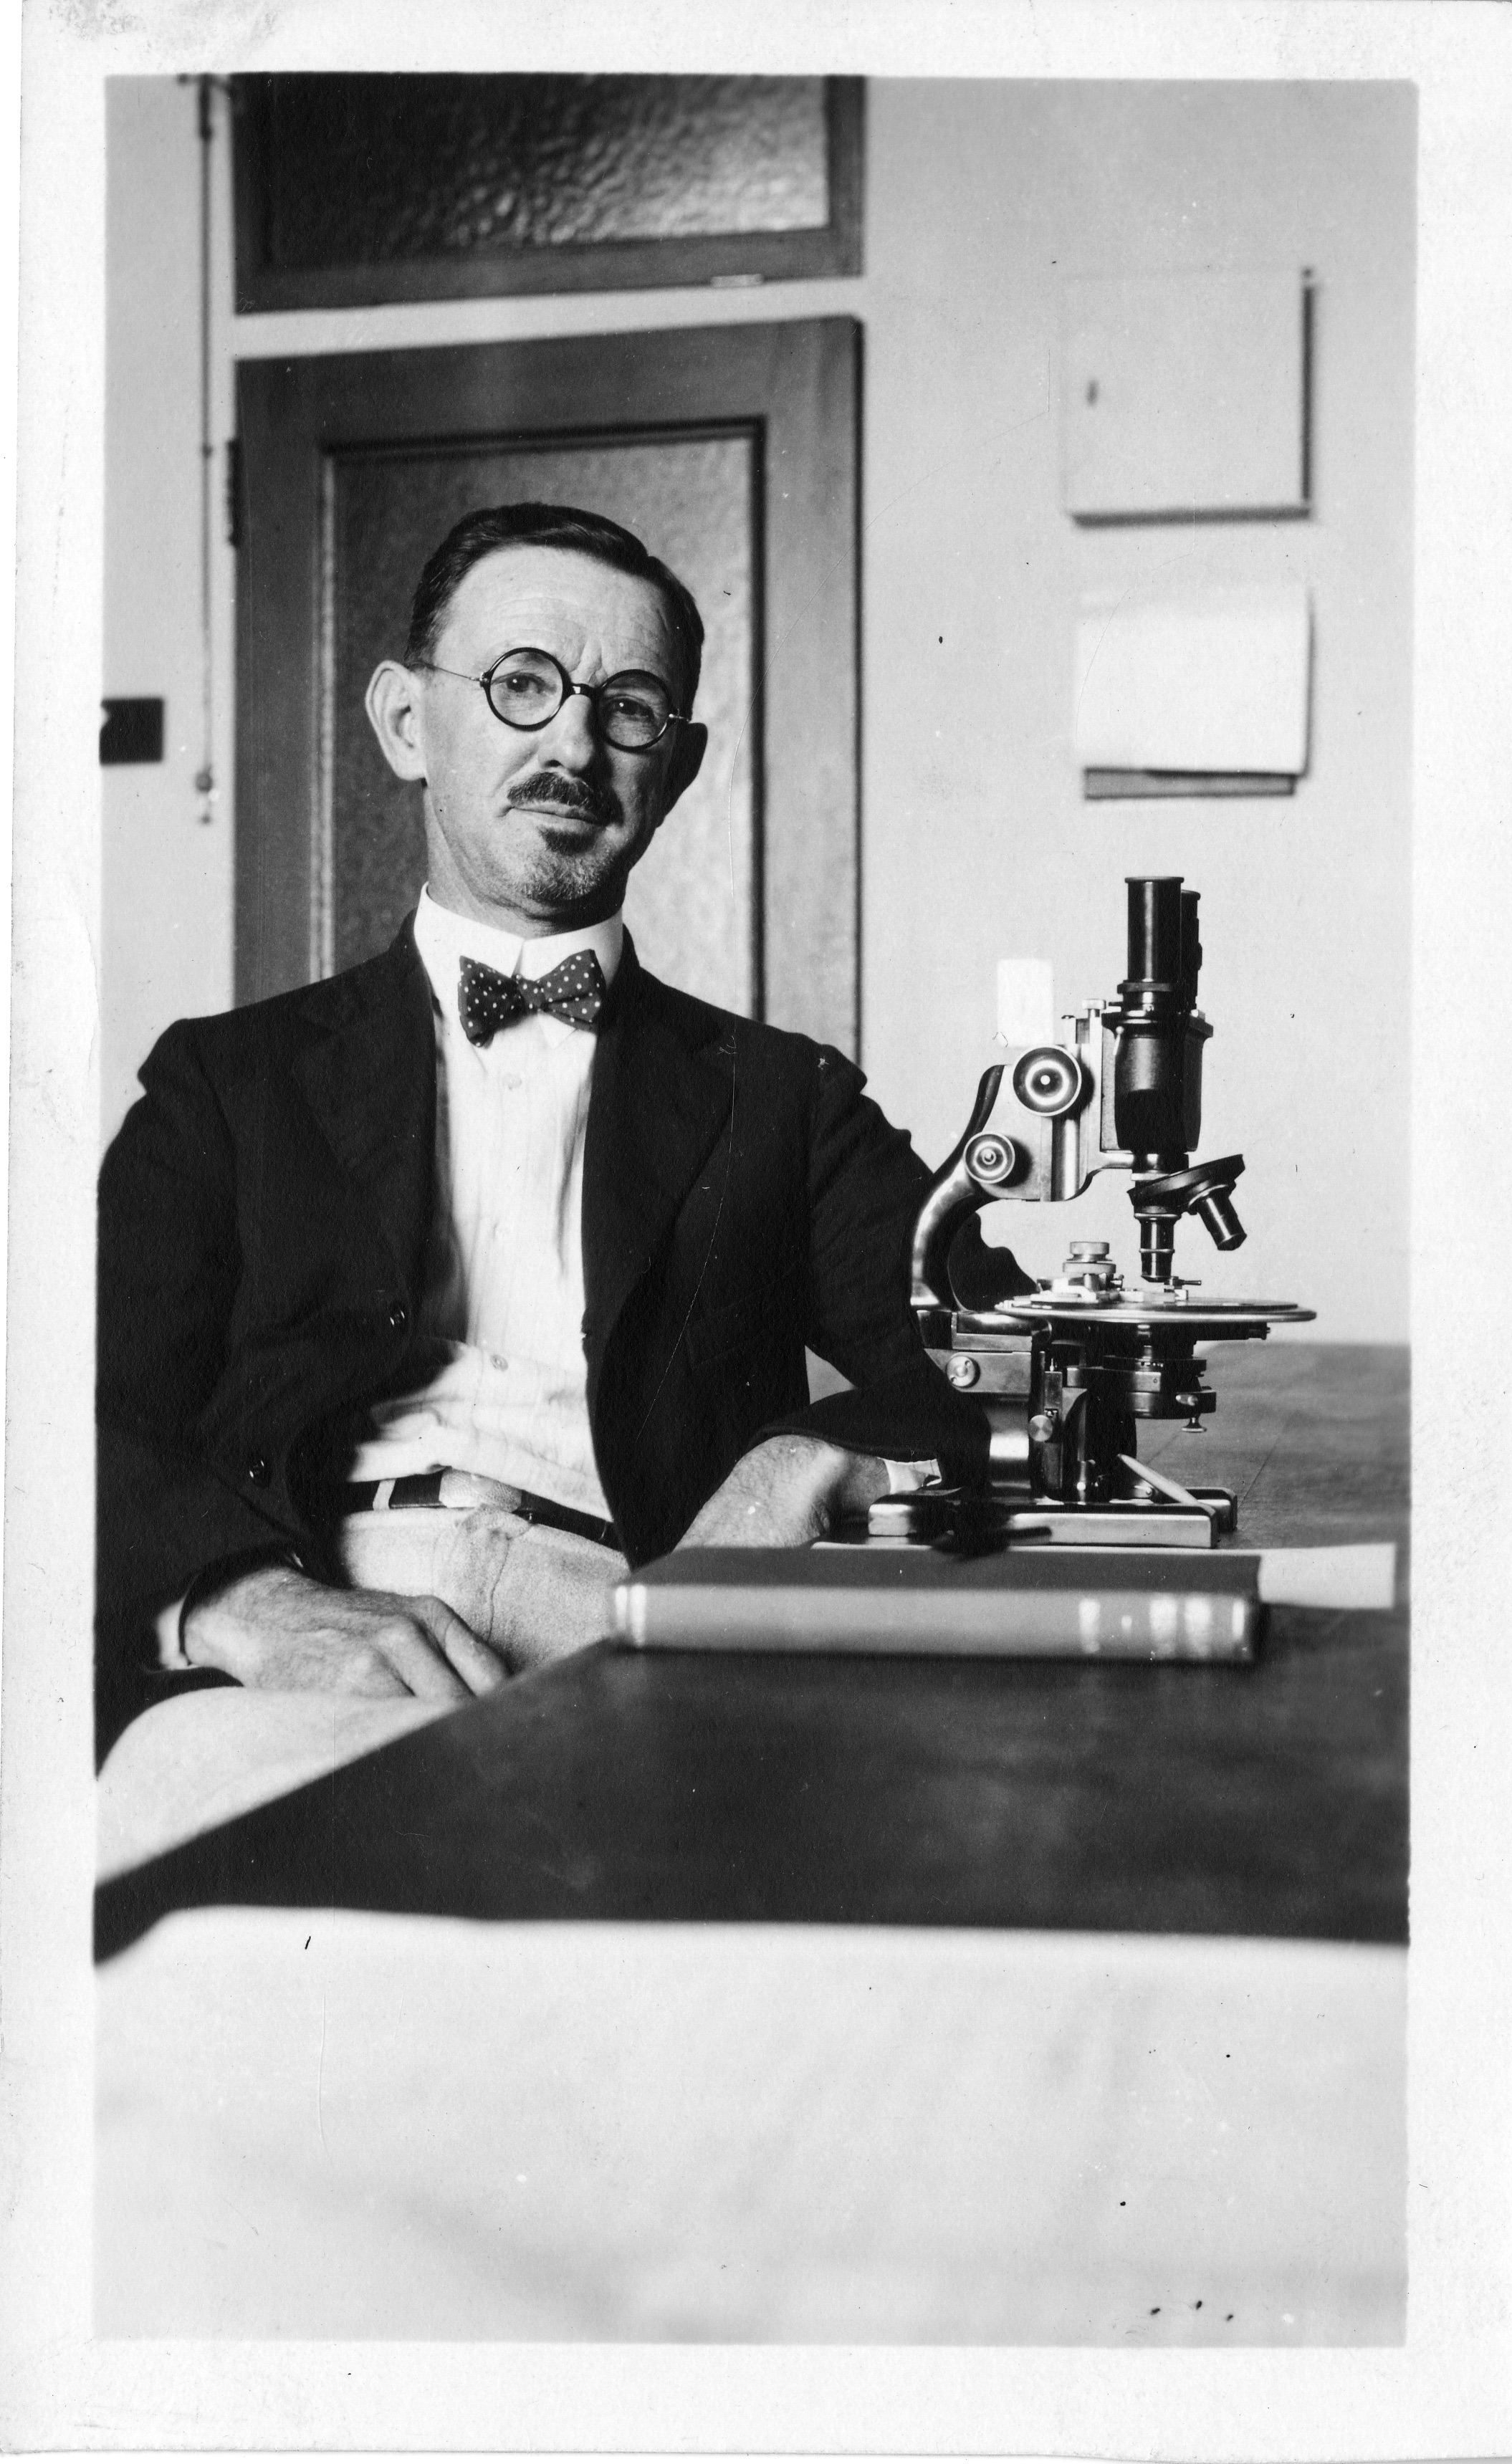 A person wearing a suit and glasses sits at a desk and looks directly into the camera. A microscope